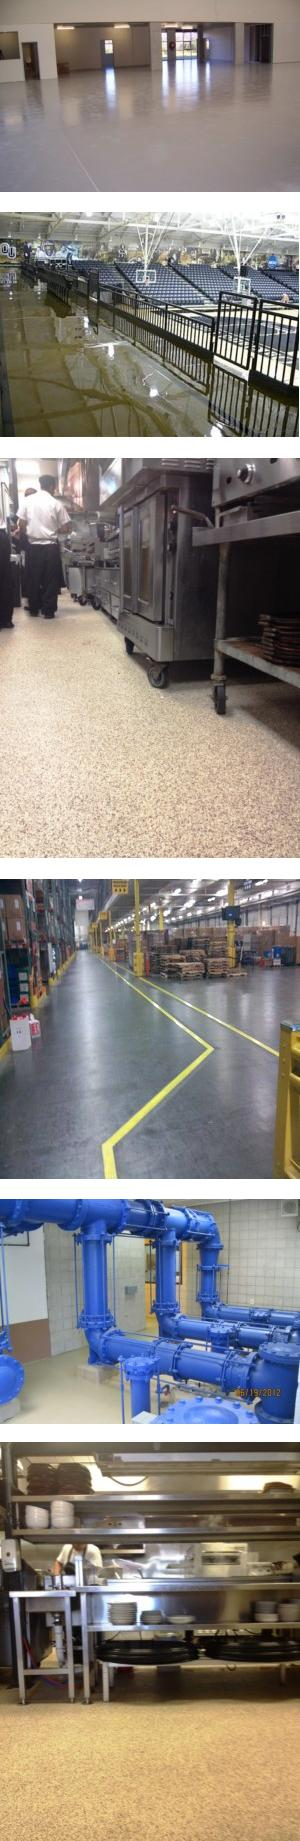 Specialty Flooring Systems : Specialty protective floor coatings elite crete systems